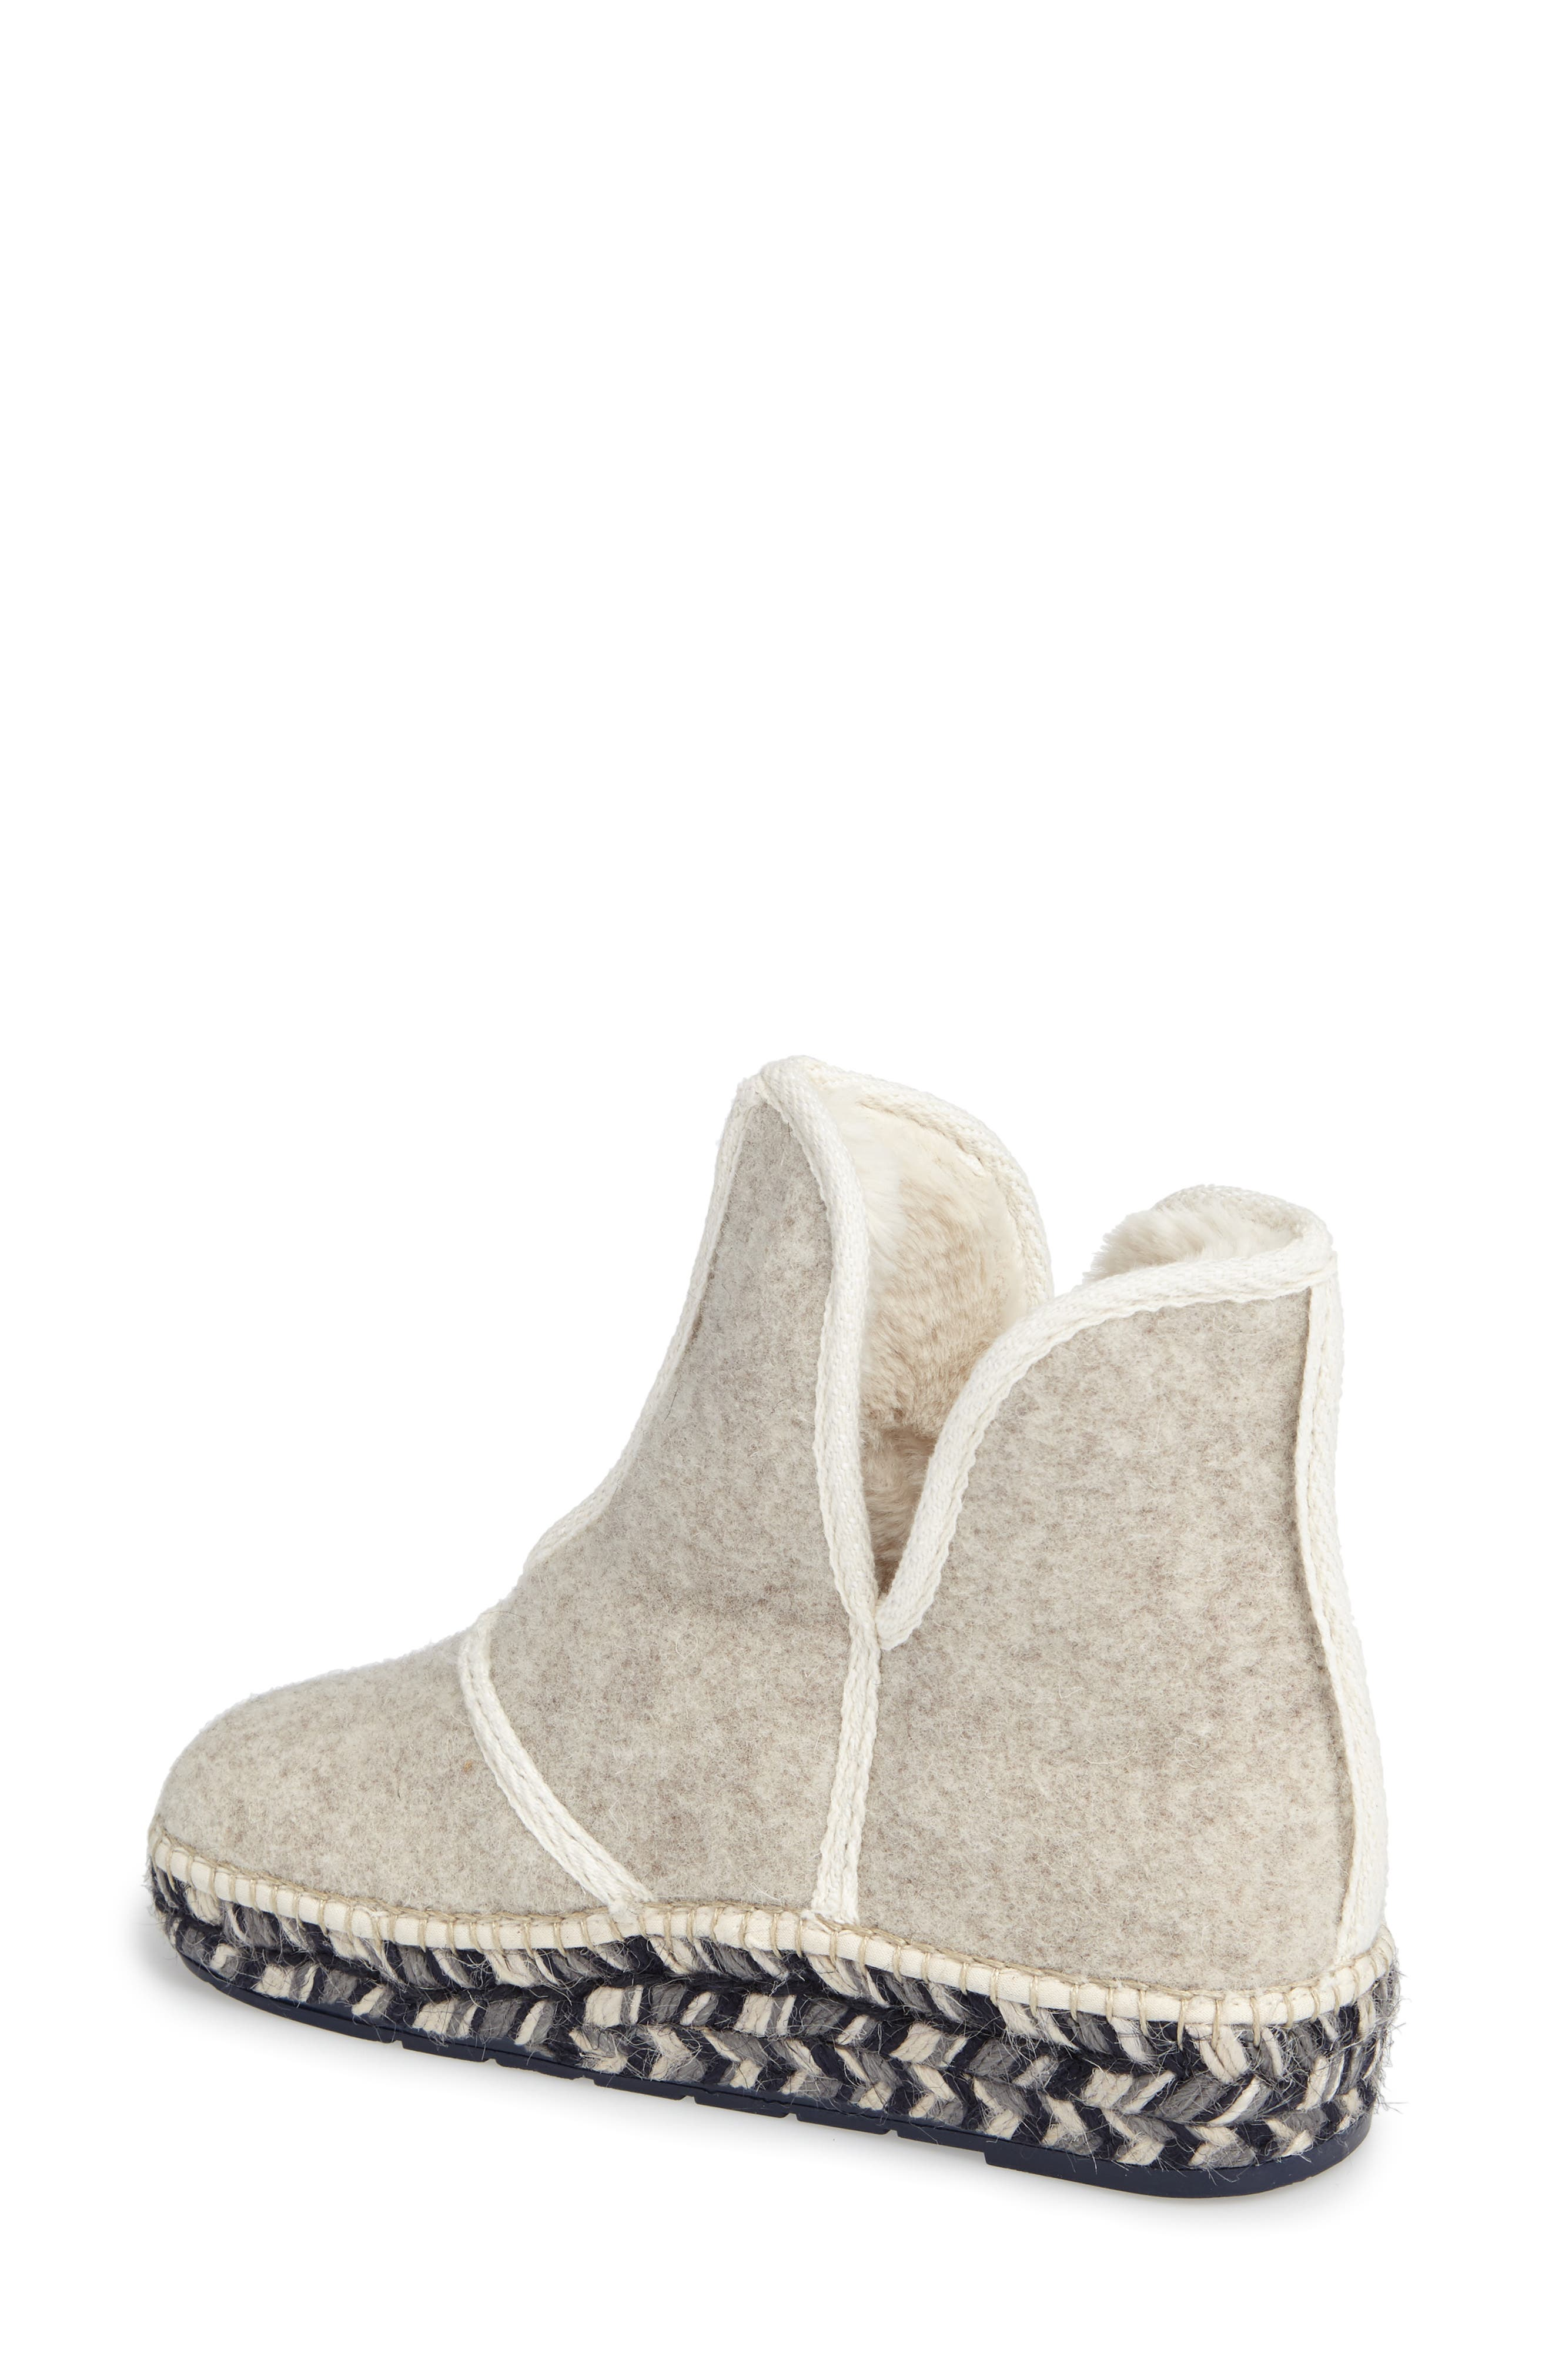 Espadrille Platform Bootie with Faux Fur Lining,                             Alternate thumbnail 2, color,                             ECRU FELT